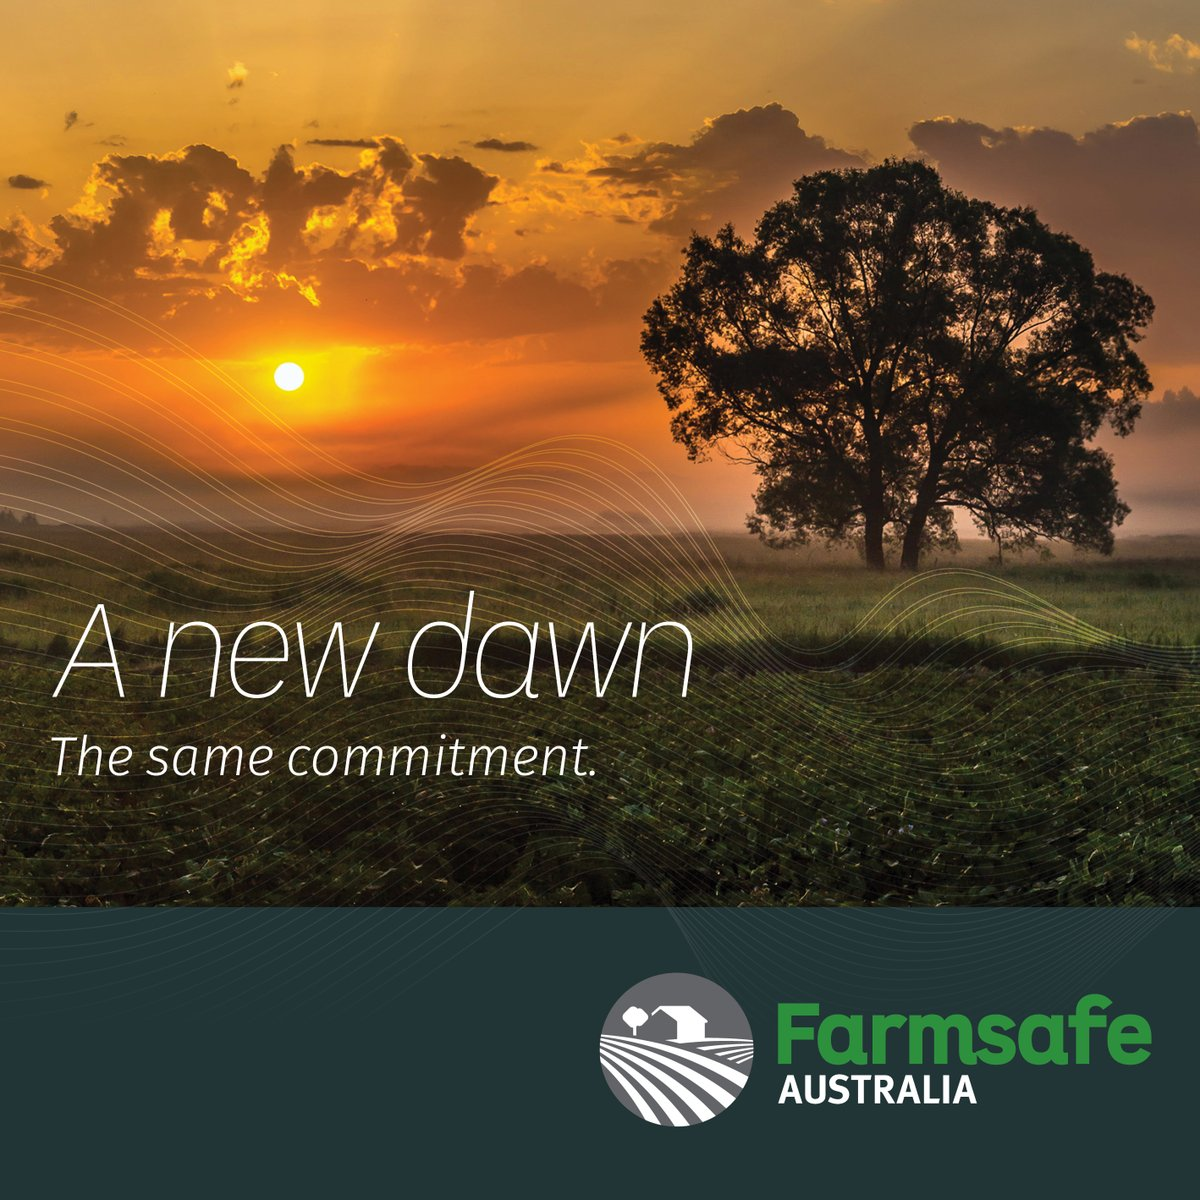 This week (20 - 24 July) is National Farm Safety Week 🙌 Make sure to keep an eye on @FarmsafeAust's page throughout the week as they discuss Farming for a Future 🚜🌾  #FarmSafetyWeek #saferfarms #farmsafeaustralia https://t.co/HFi23UOsoP